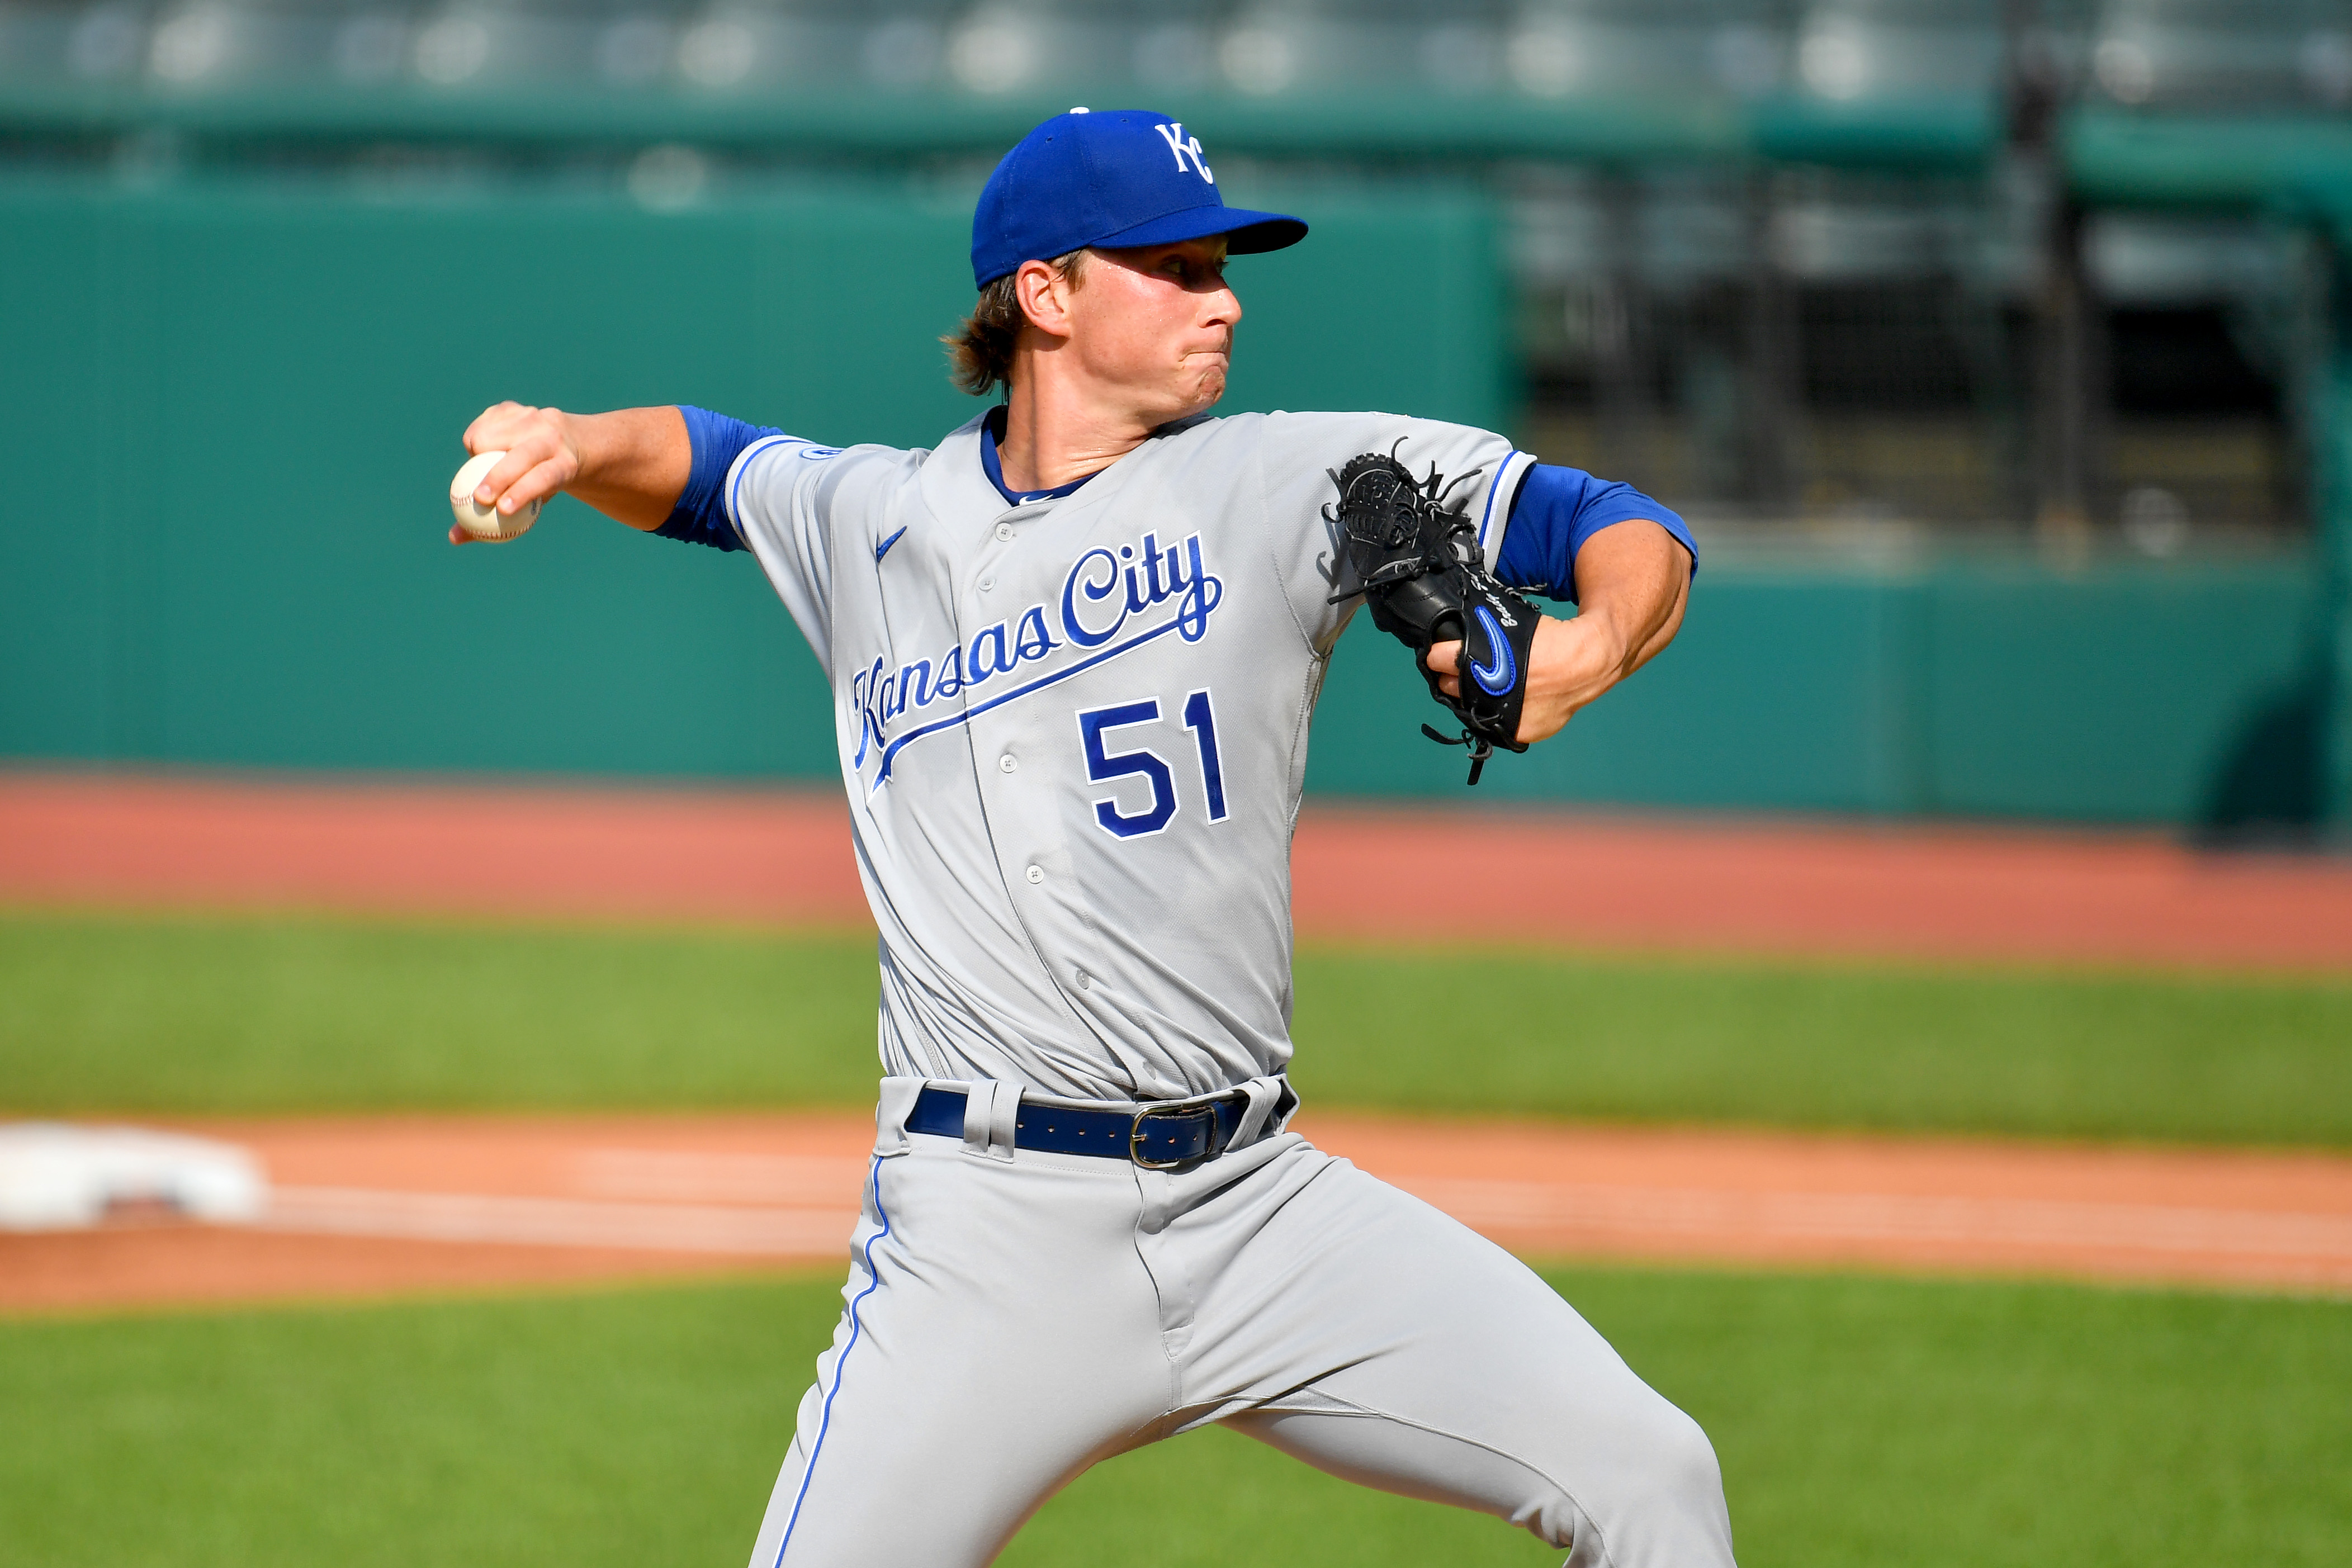 Starting pitcher Brady Singer #51 of the Kansas City Royals pitches during the first inning against the Cleveland Indians at Progressive Field on July 25, 2020 in Cleveland, Ohio. The 2020 season had been postponed since March due to the COVID-19 pandemic.